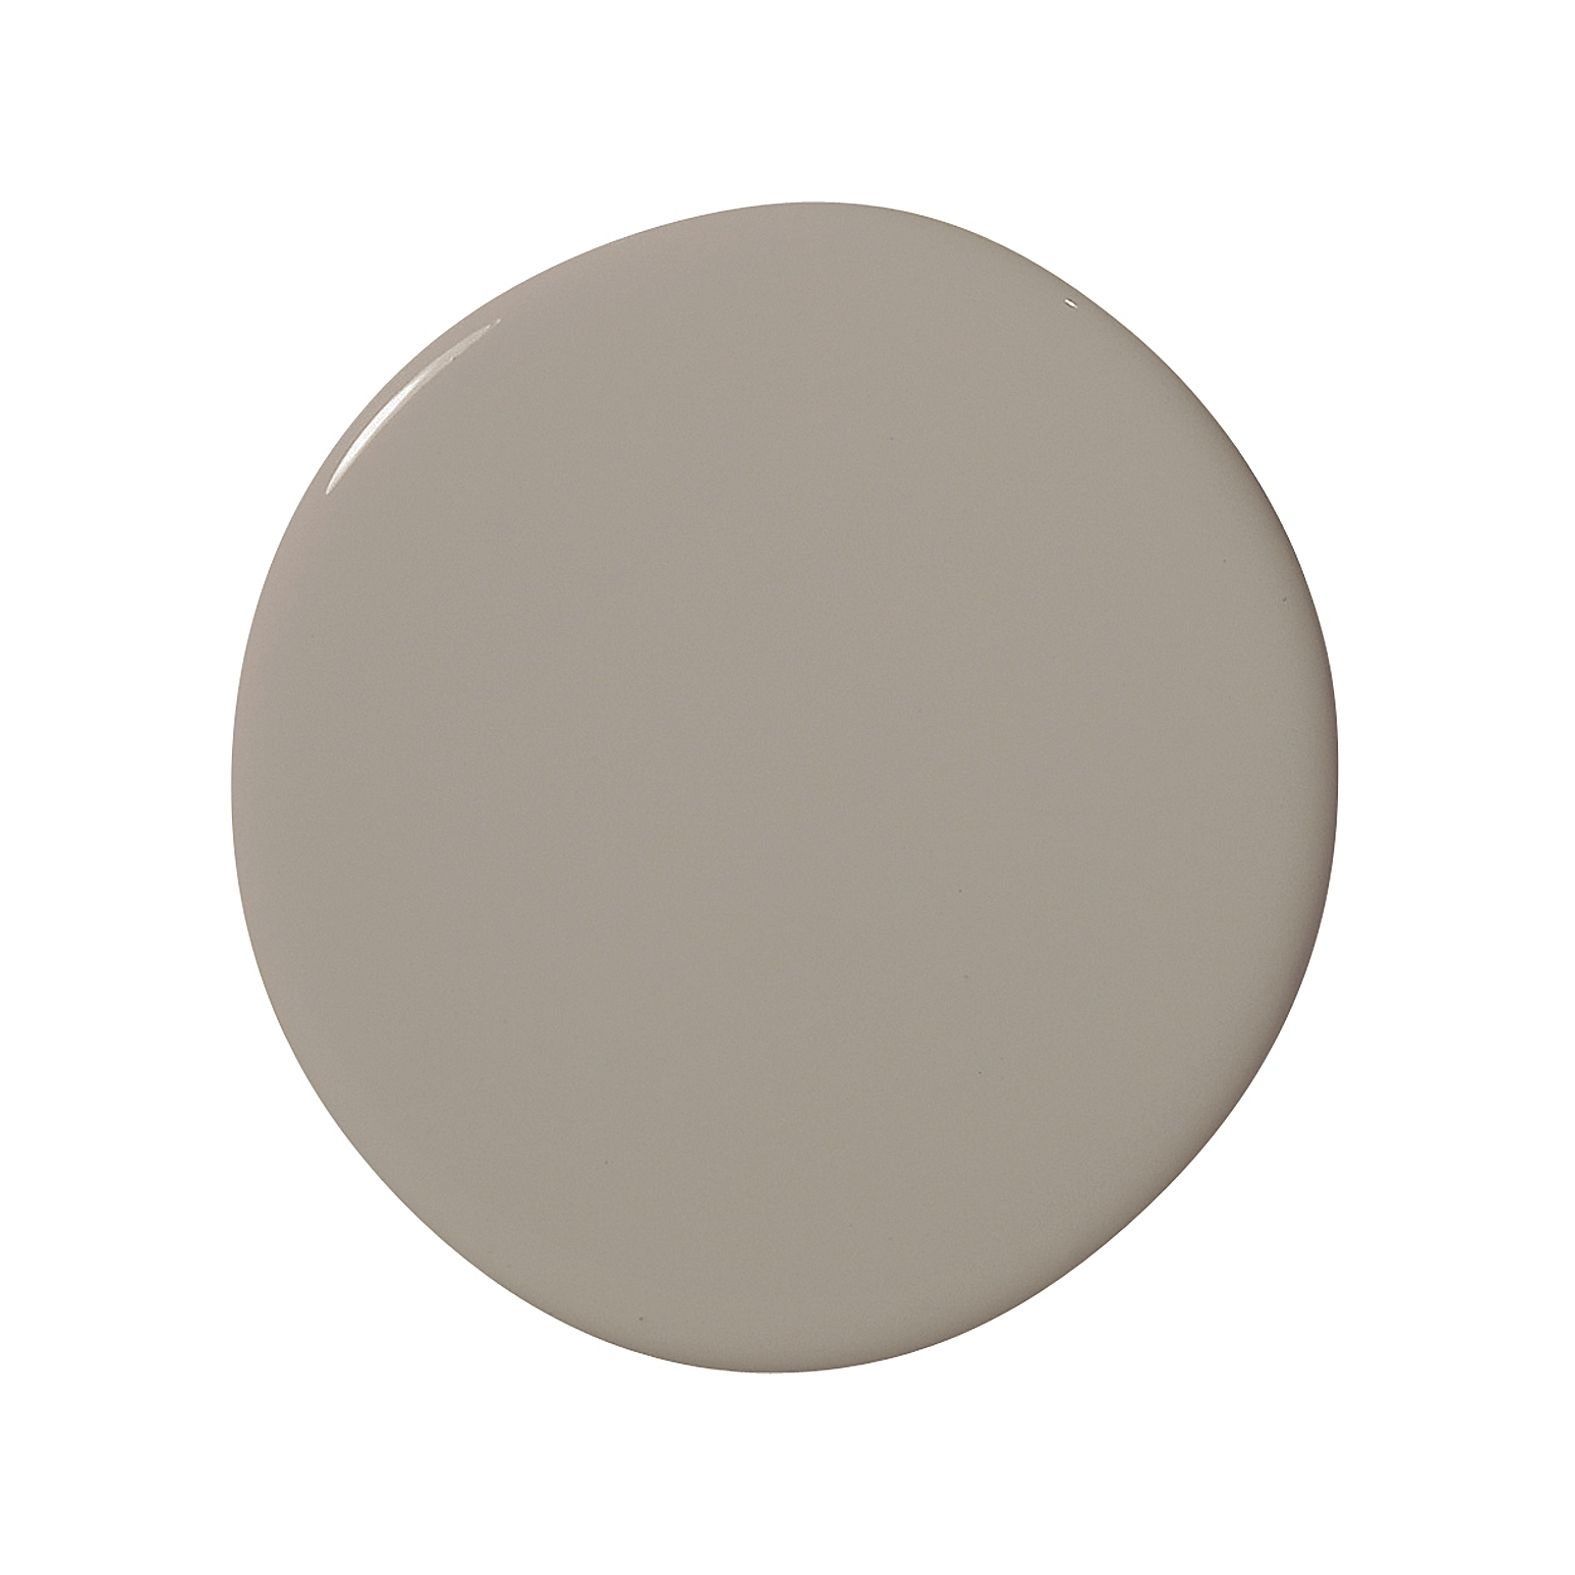 Is Taupe Grey: Mushroom A Warm, Delicate Shade That Is Equal Parts Taupe